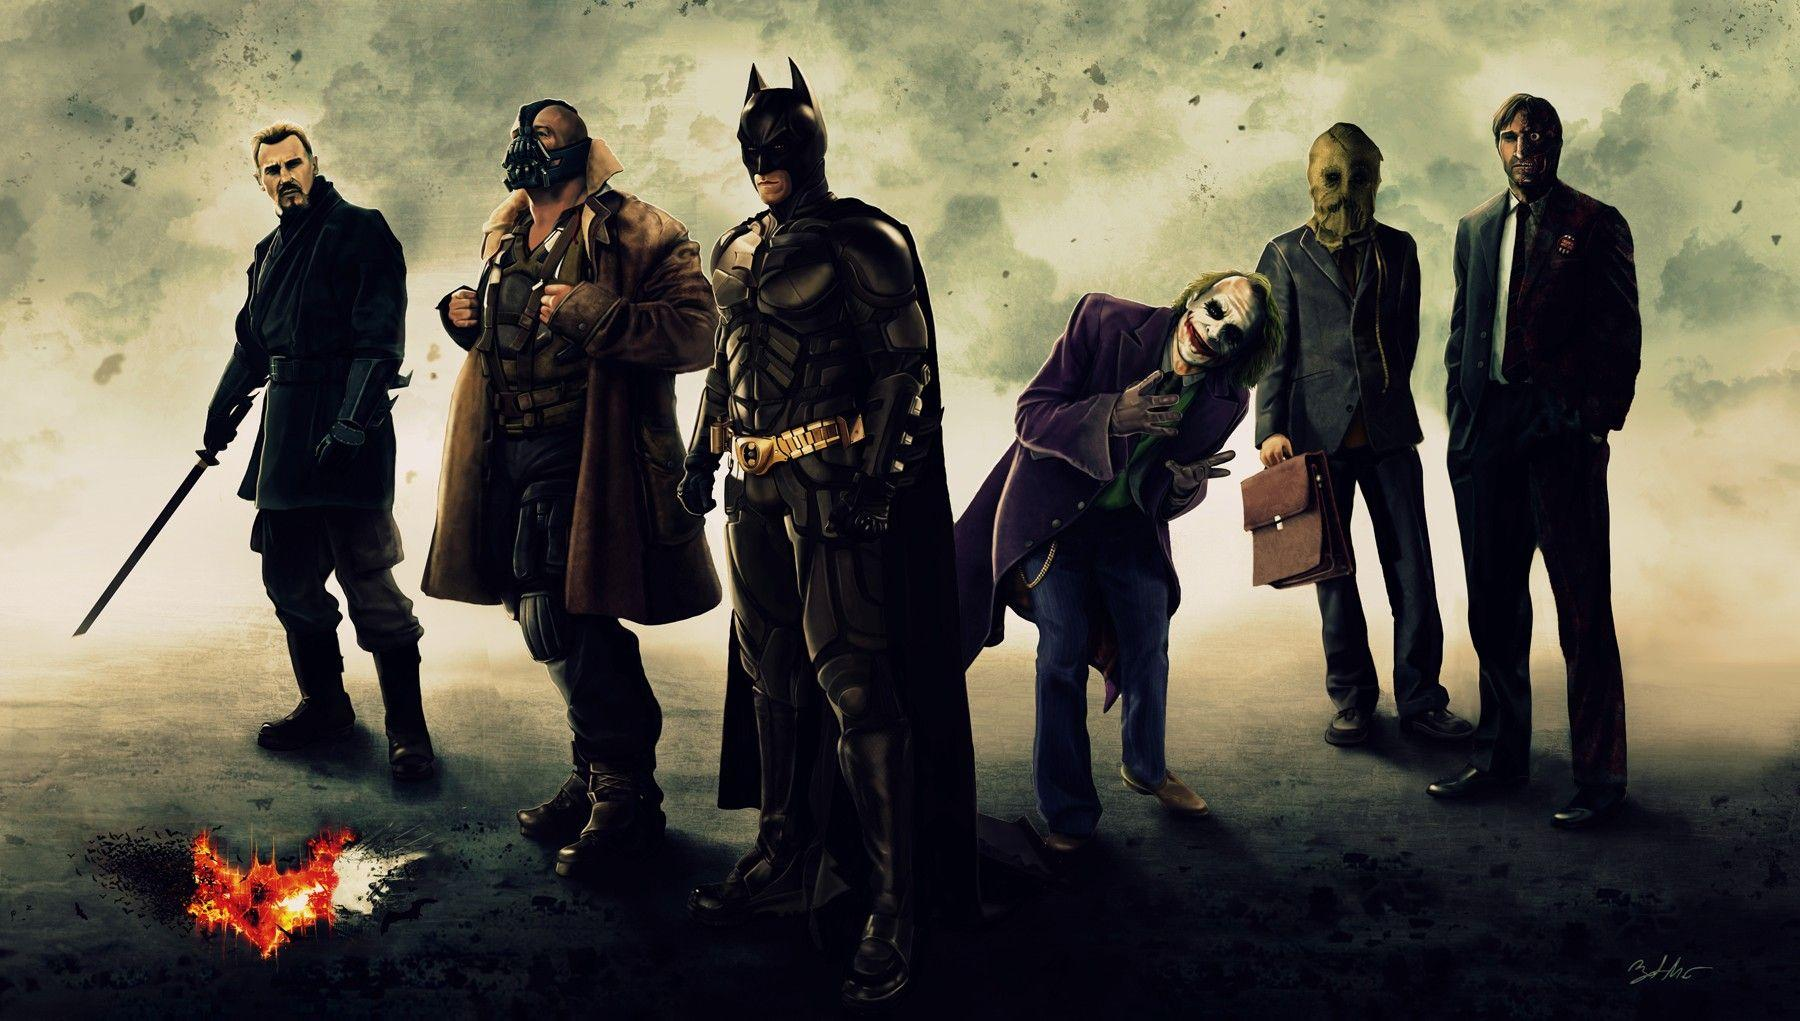 Batman, DC Comics, The Joker, Batman Begins, Two